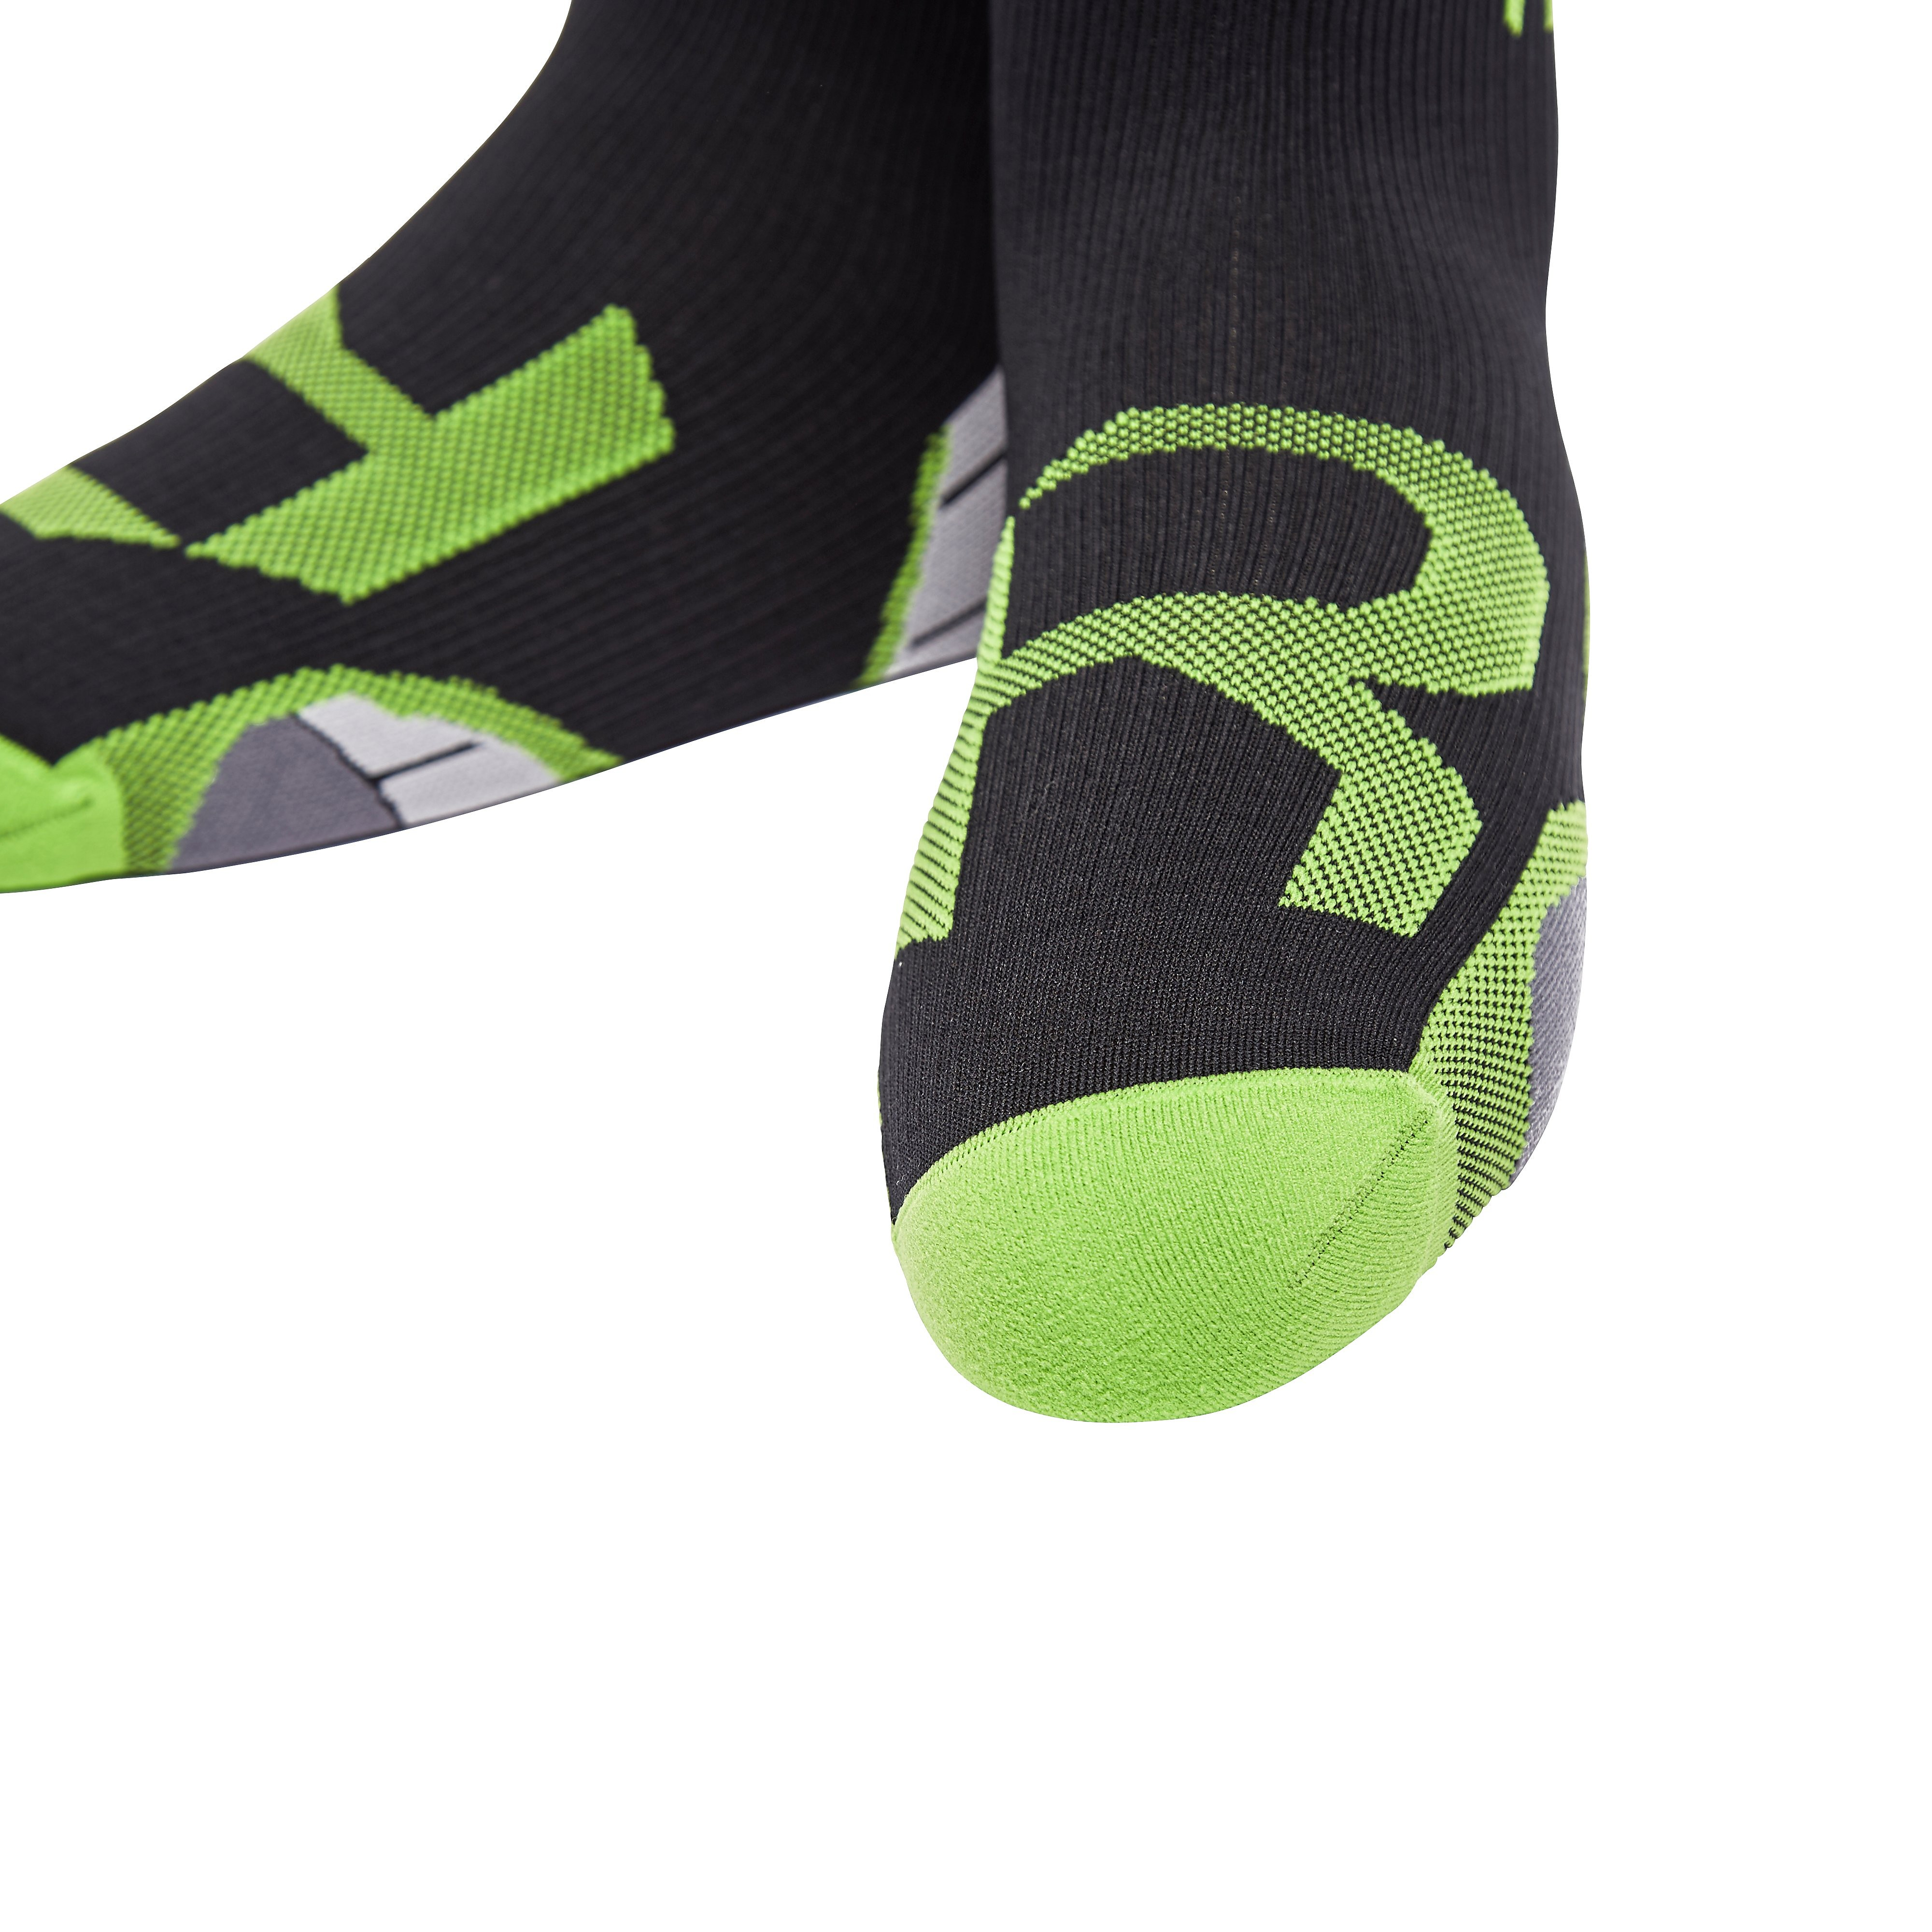 2XU 1 Pair Men's Compression Socks for Recovery